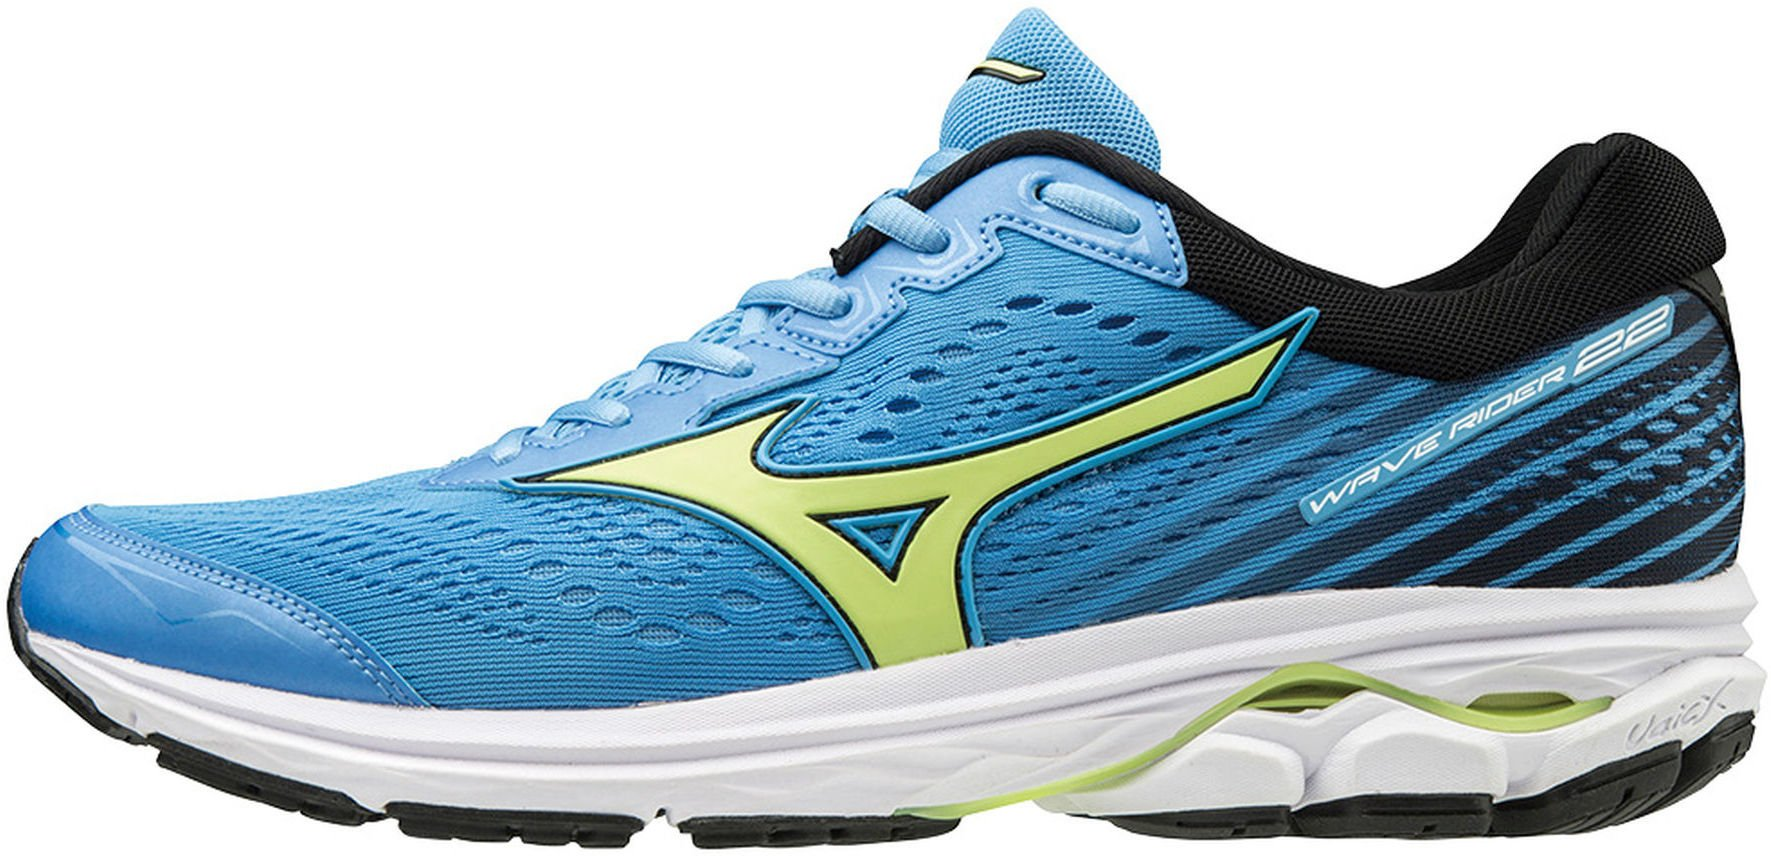 Zapatillas de running Mizuno Wave Rider 22 j1gc183135 Talla 43 EU | 9 UK | 10 US | 28 CM